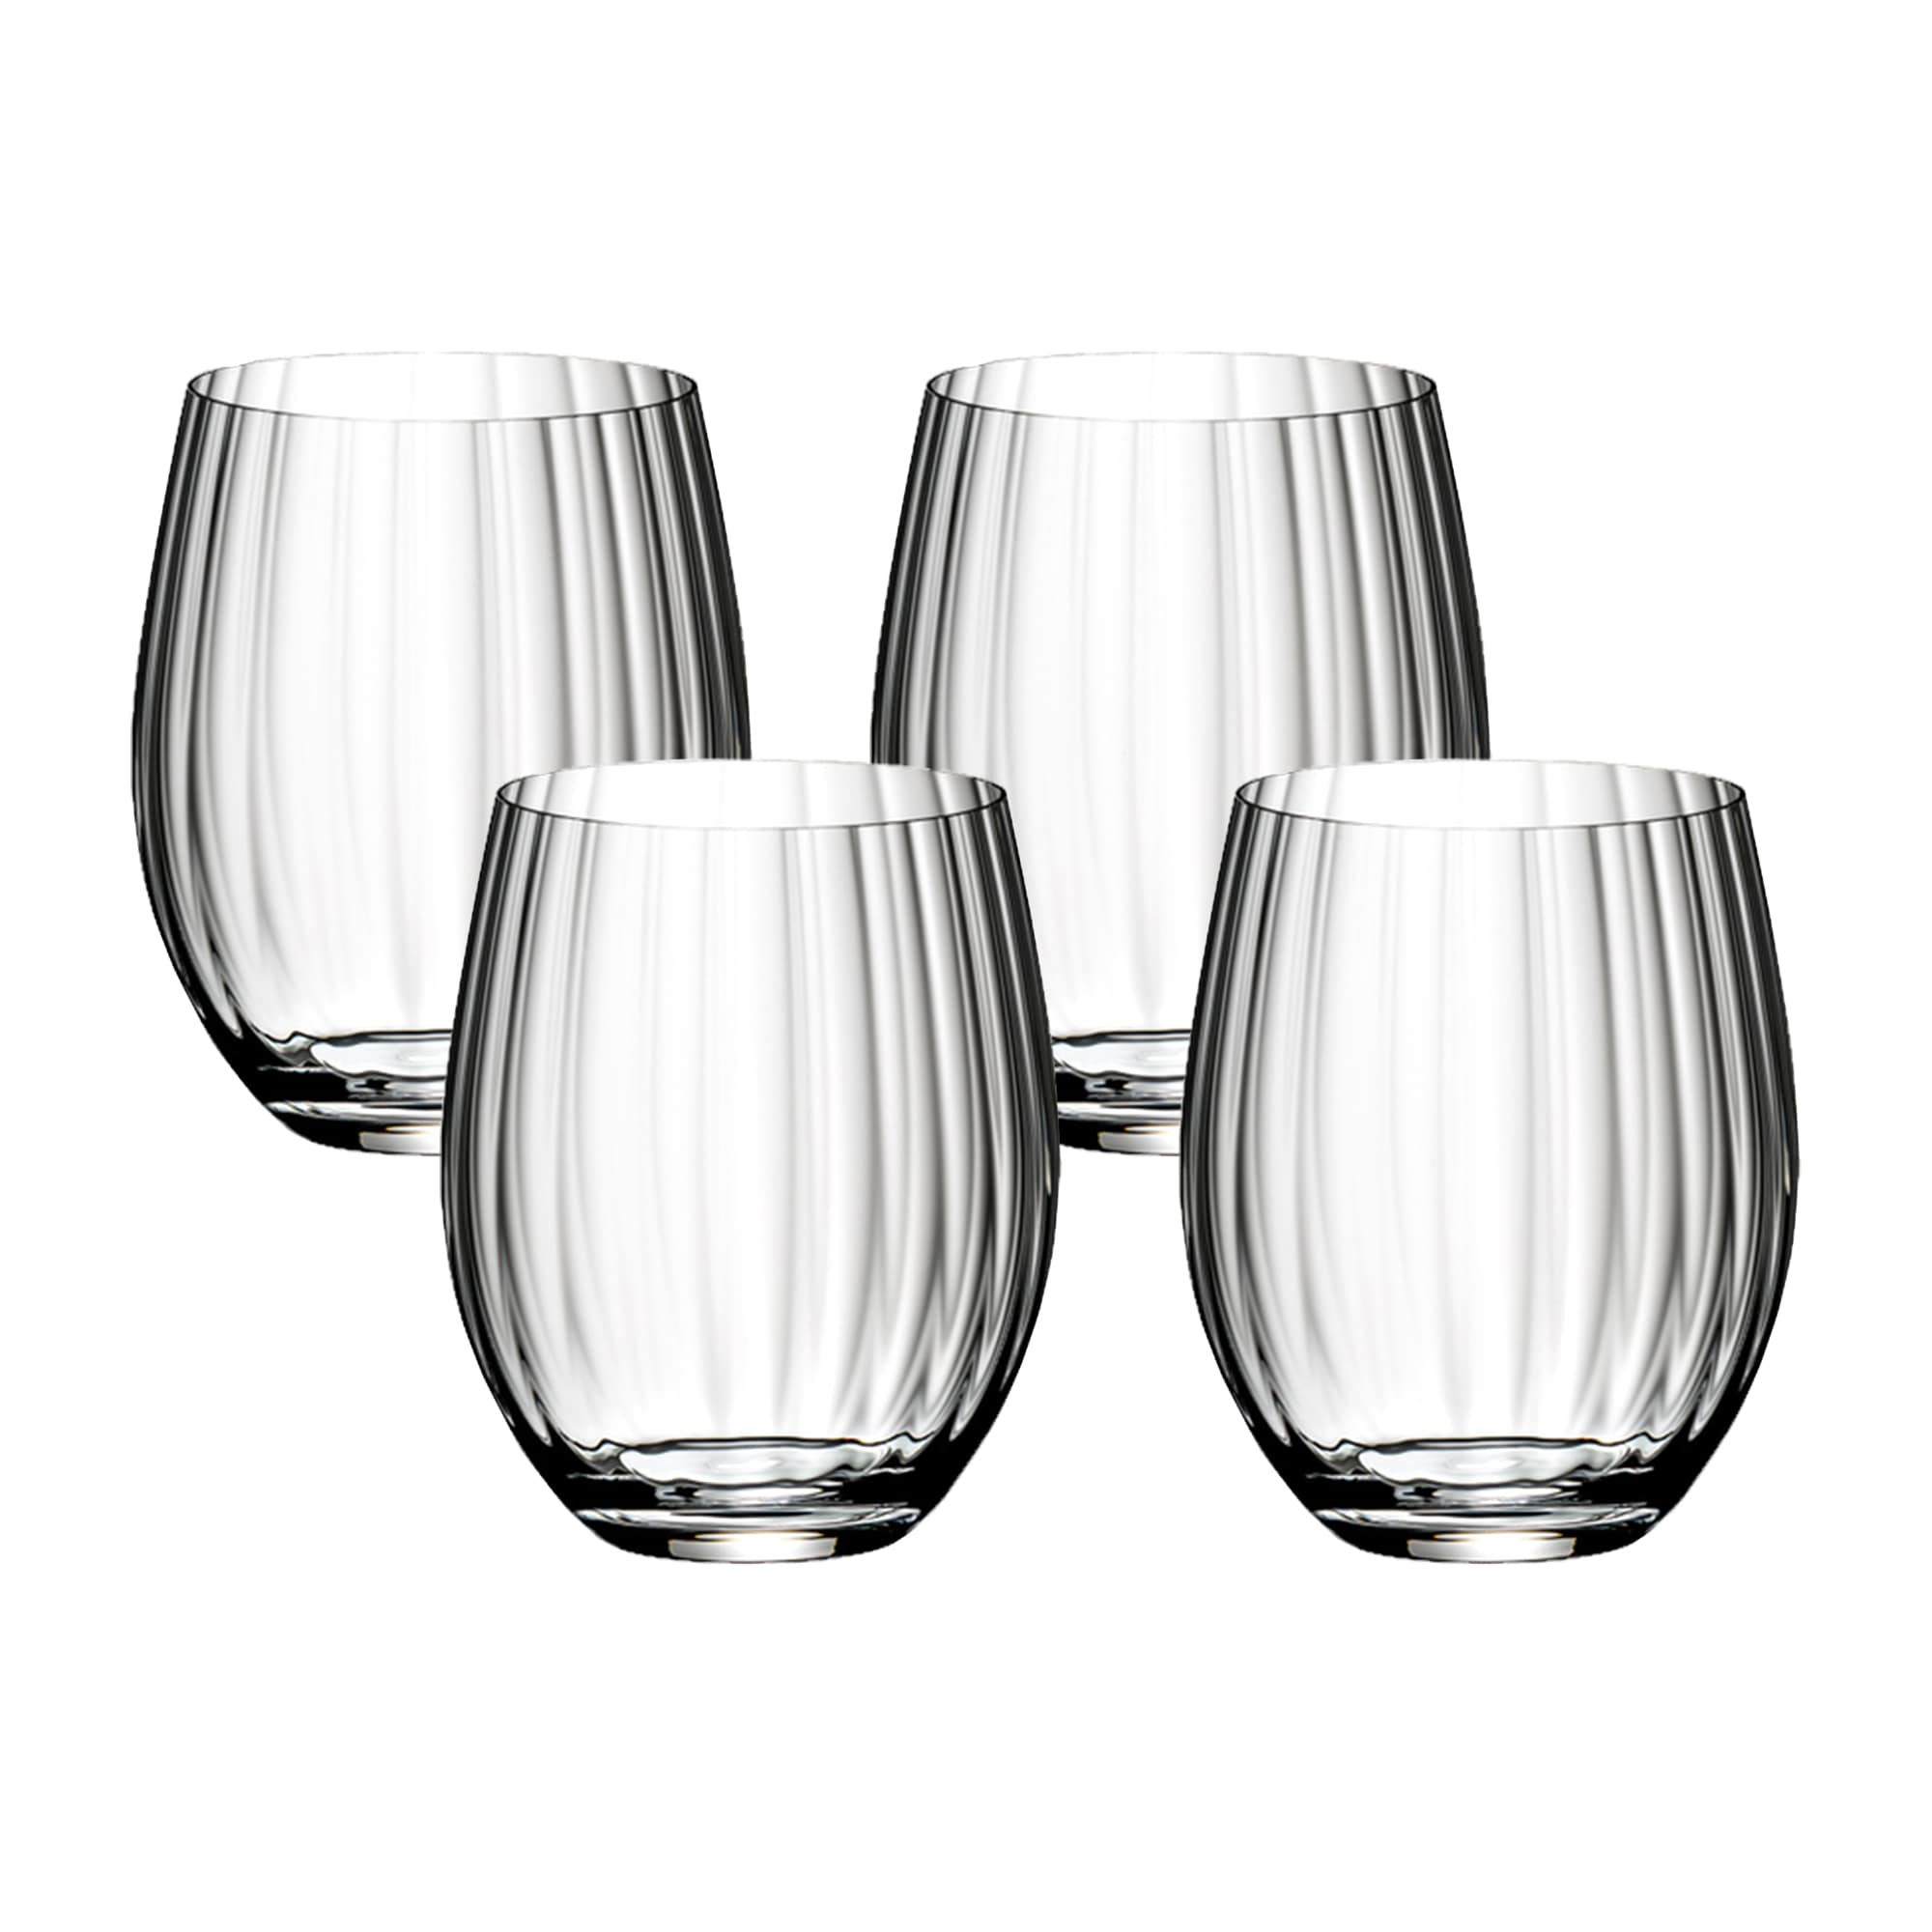 Riedel 4pc Mixing Tonic Glass